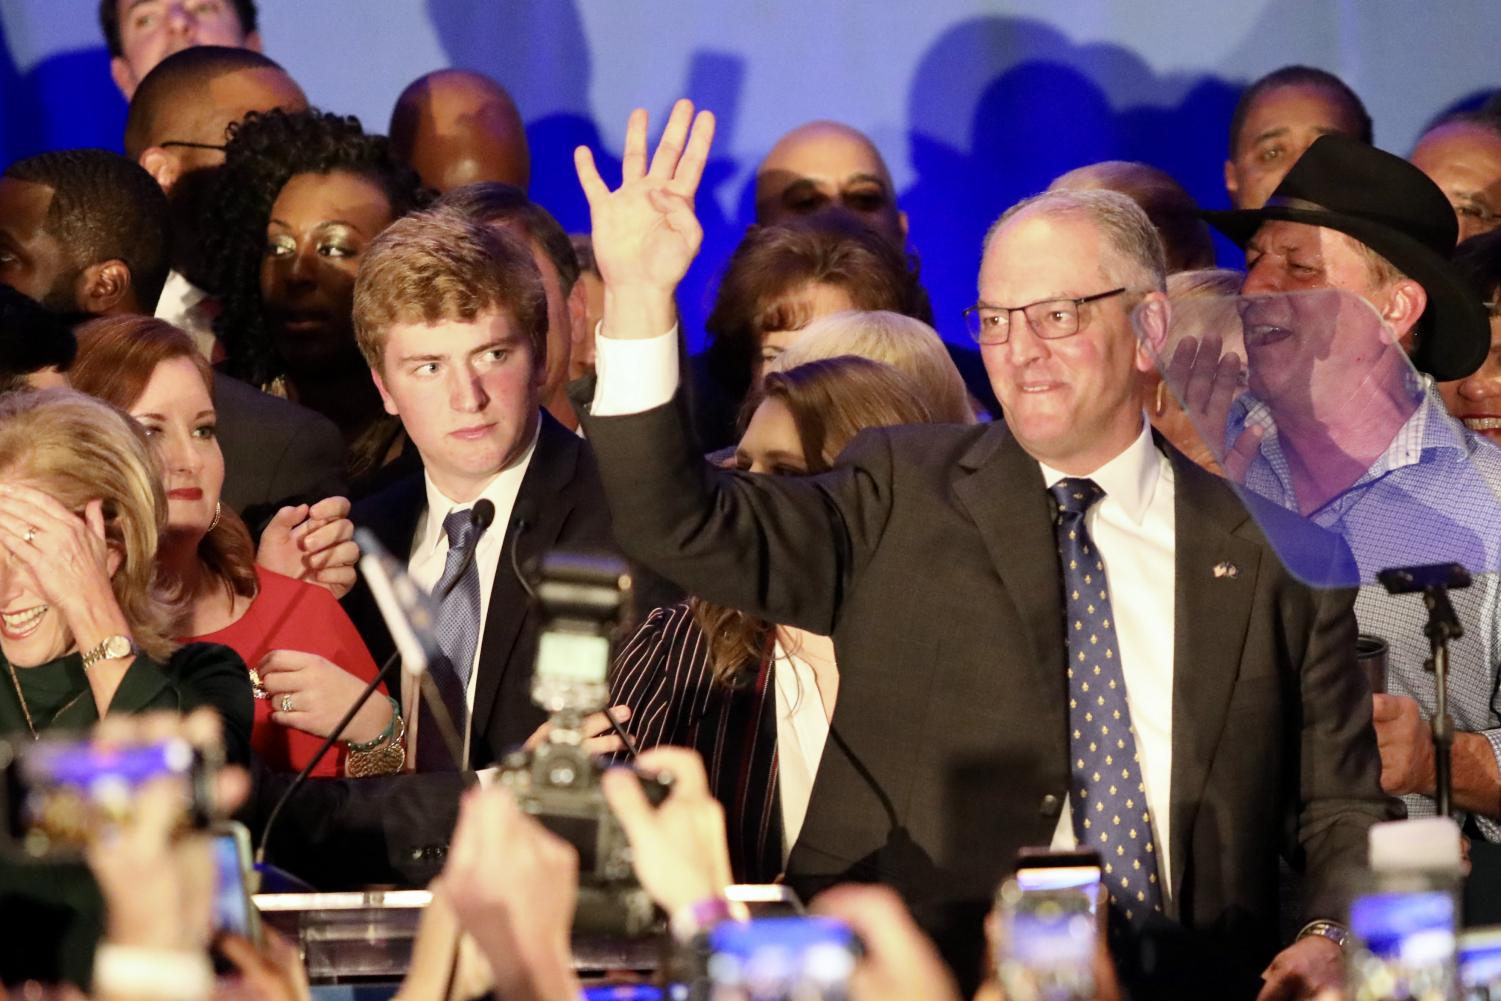 Governor John Bel Edwards holds up four fingers as he is introduced after his re-elction victory. Photo credit: Andres Fuentes